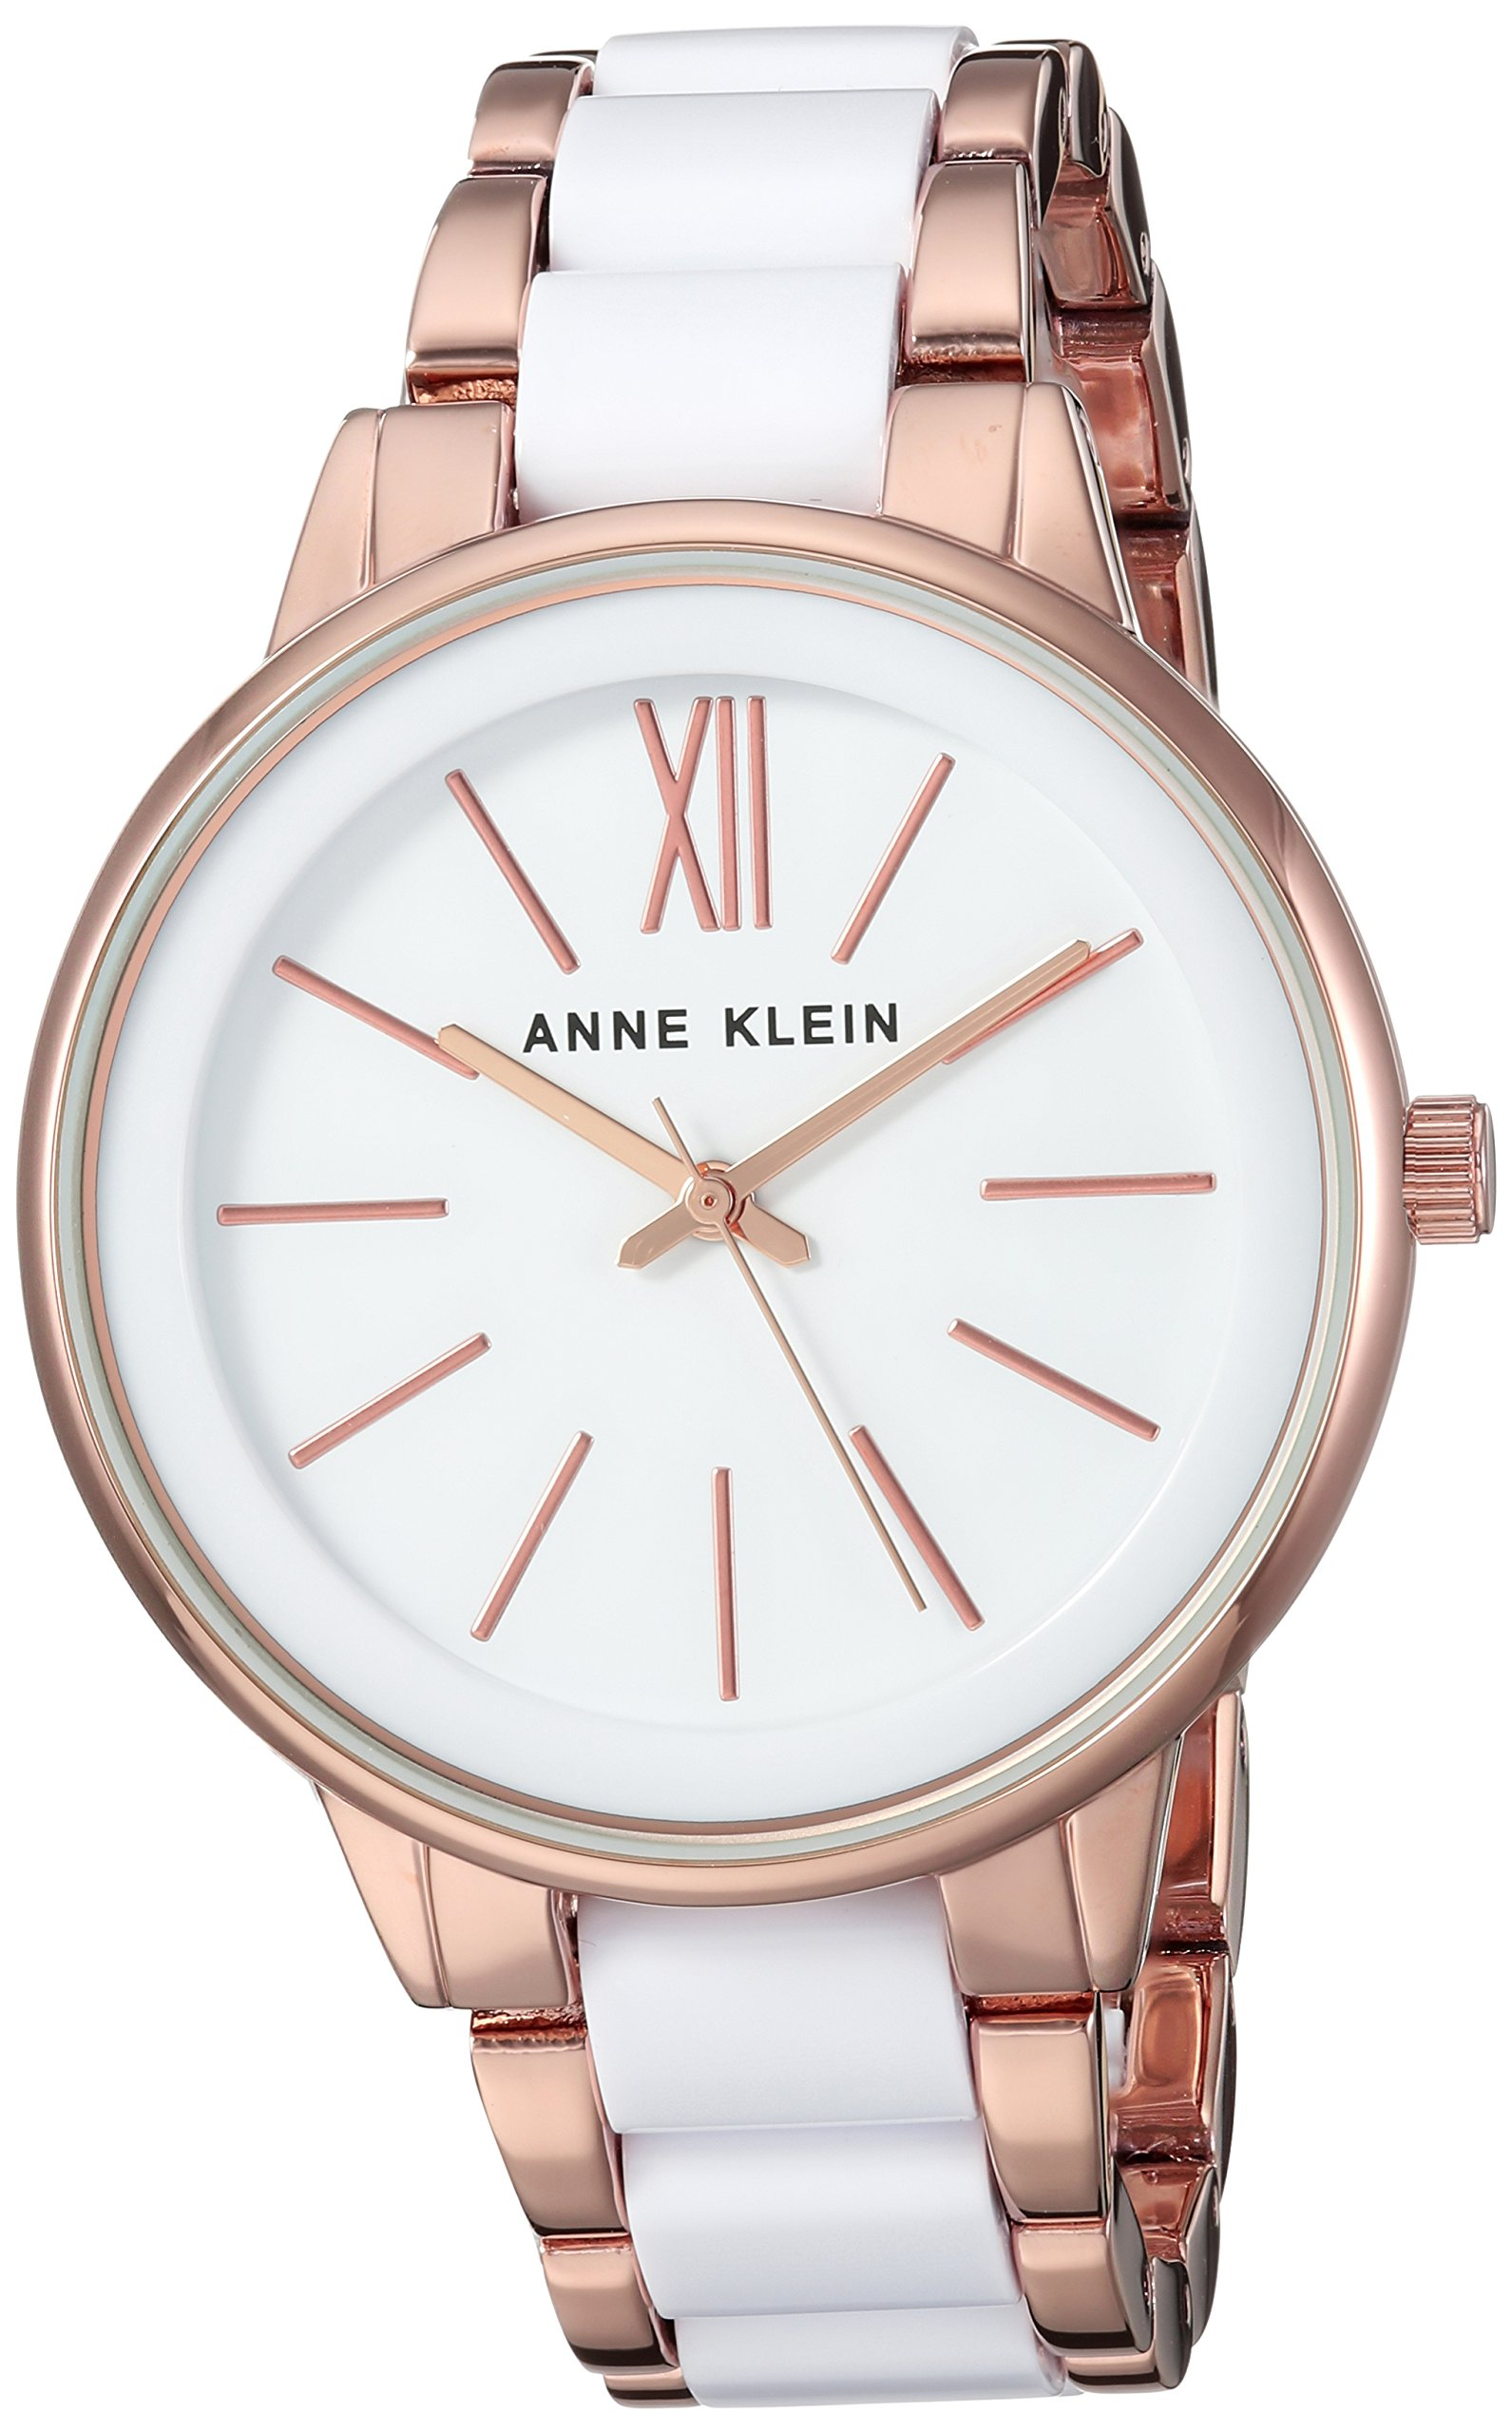 Anne Klein Women's Rose Gold-Tone and White Bracelet Watch